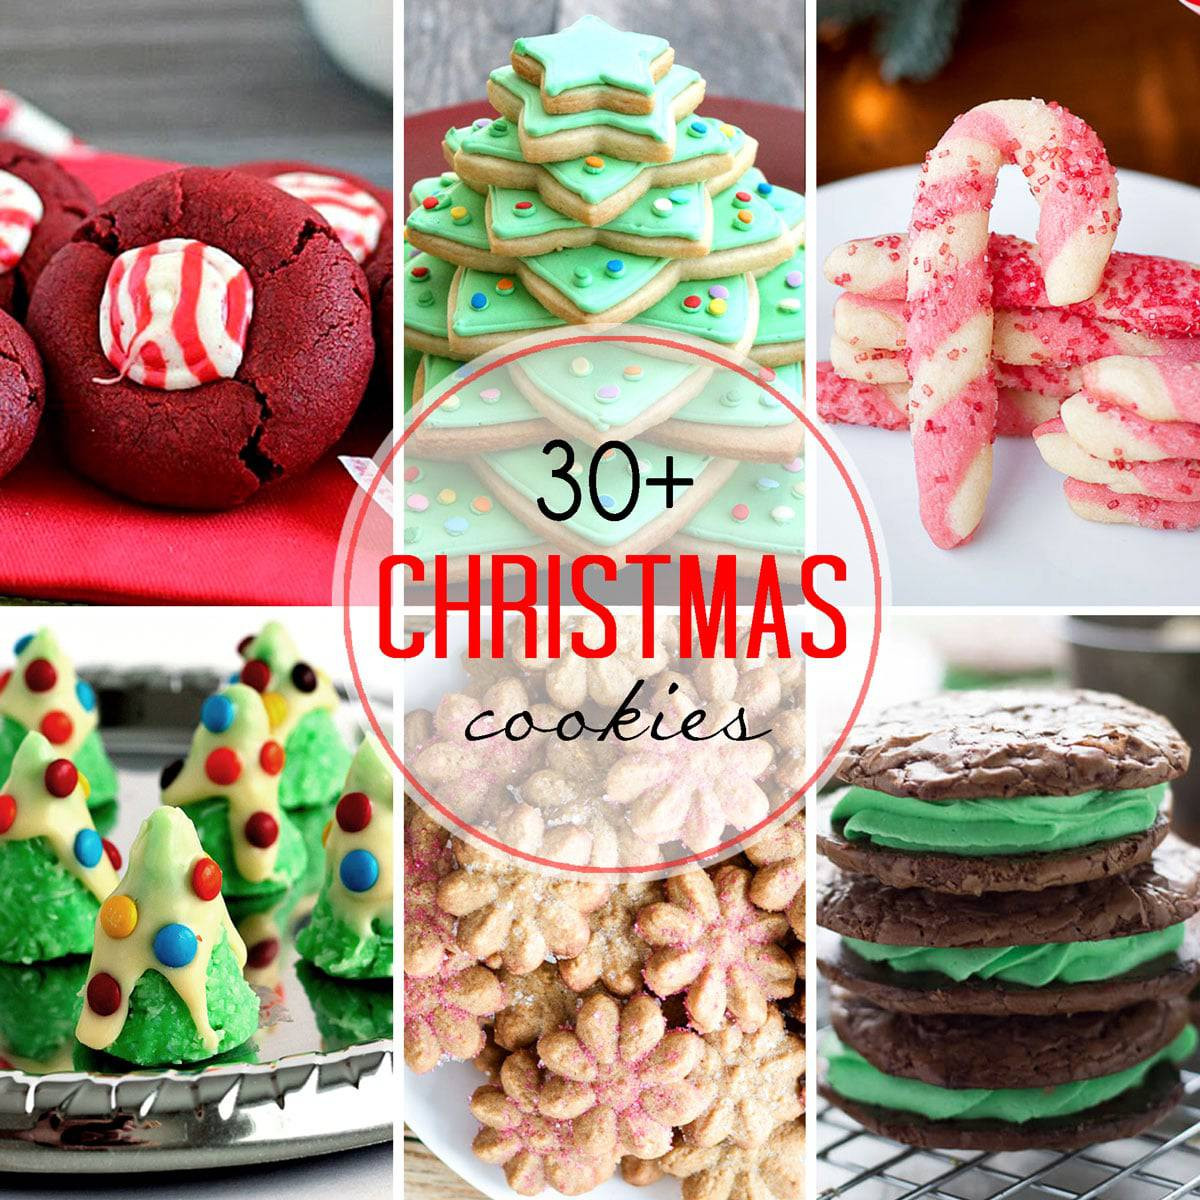 Baked Christmas Cookies  30 Plus Festive Christmas Cookie Recipes — Let s Dish Recipes